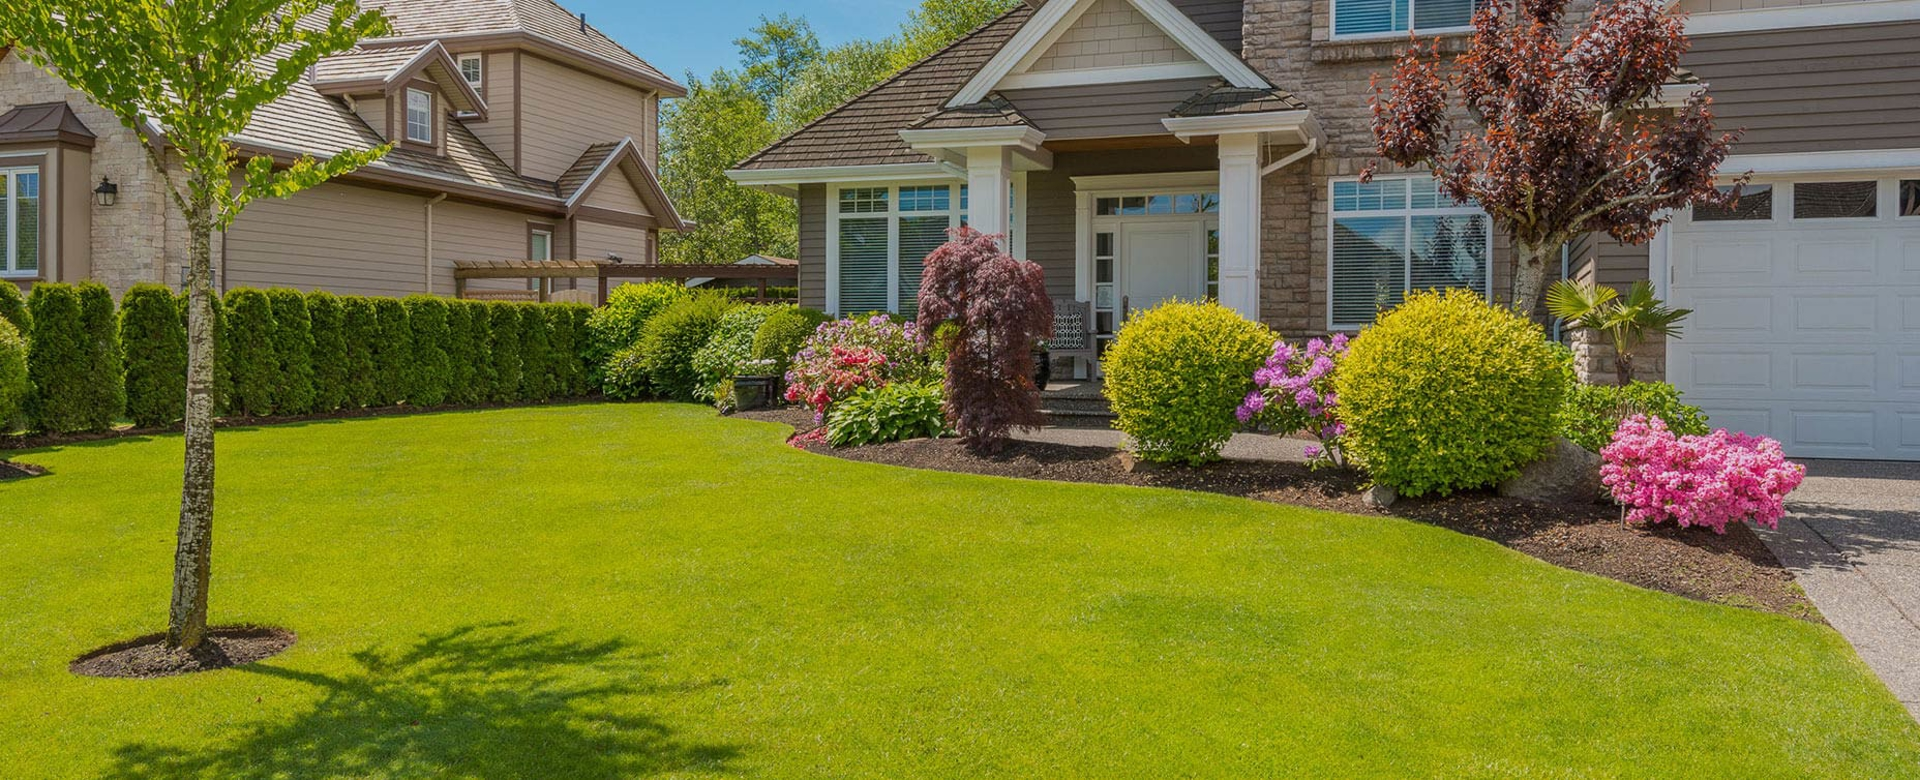 Lawn Care & Landscaping Services | The Grounds Guys